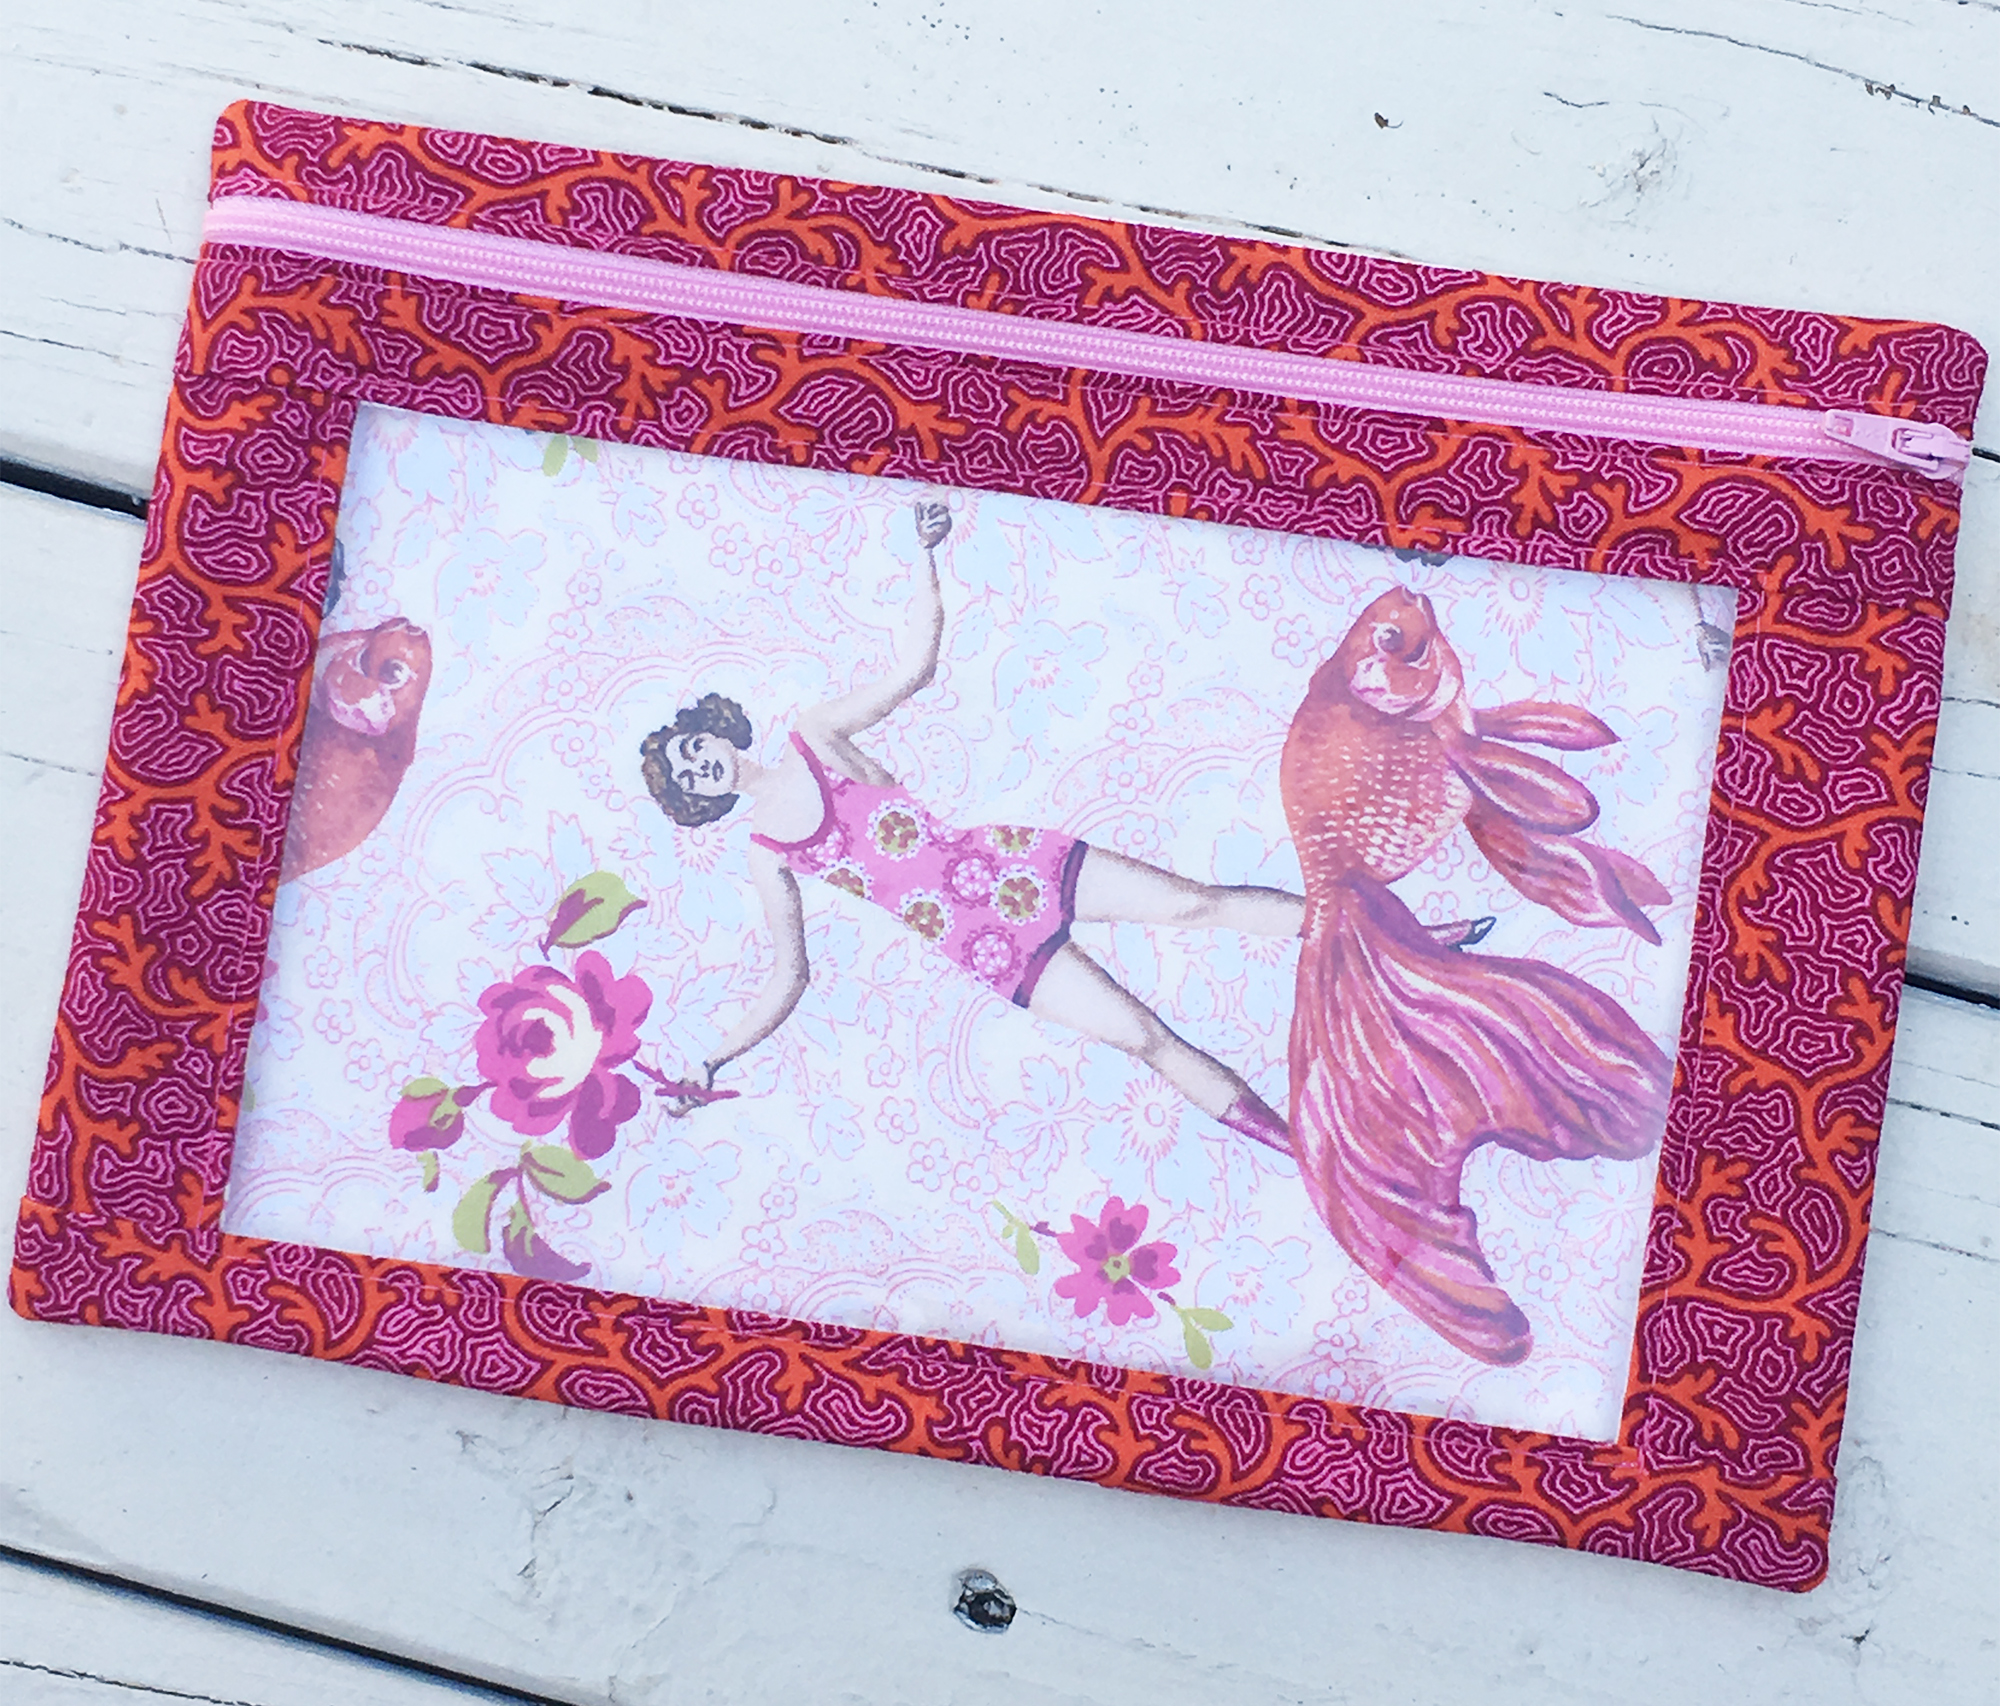 Sew Sweetness Minikins I-Spy Pouch sewing pattern, sewn by Terry